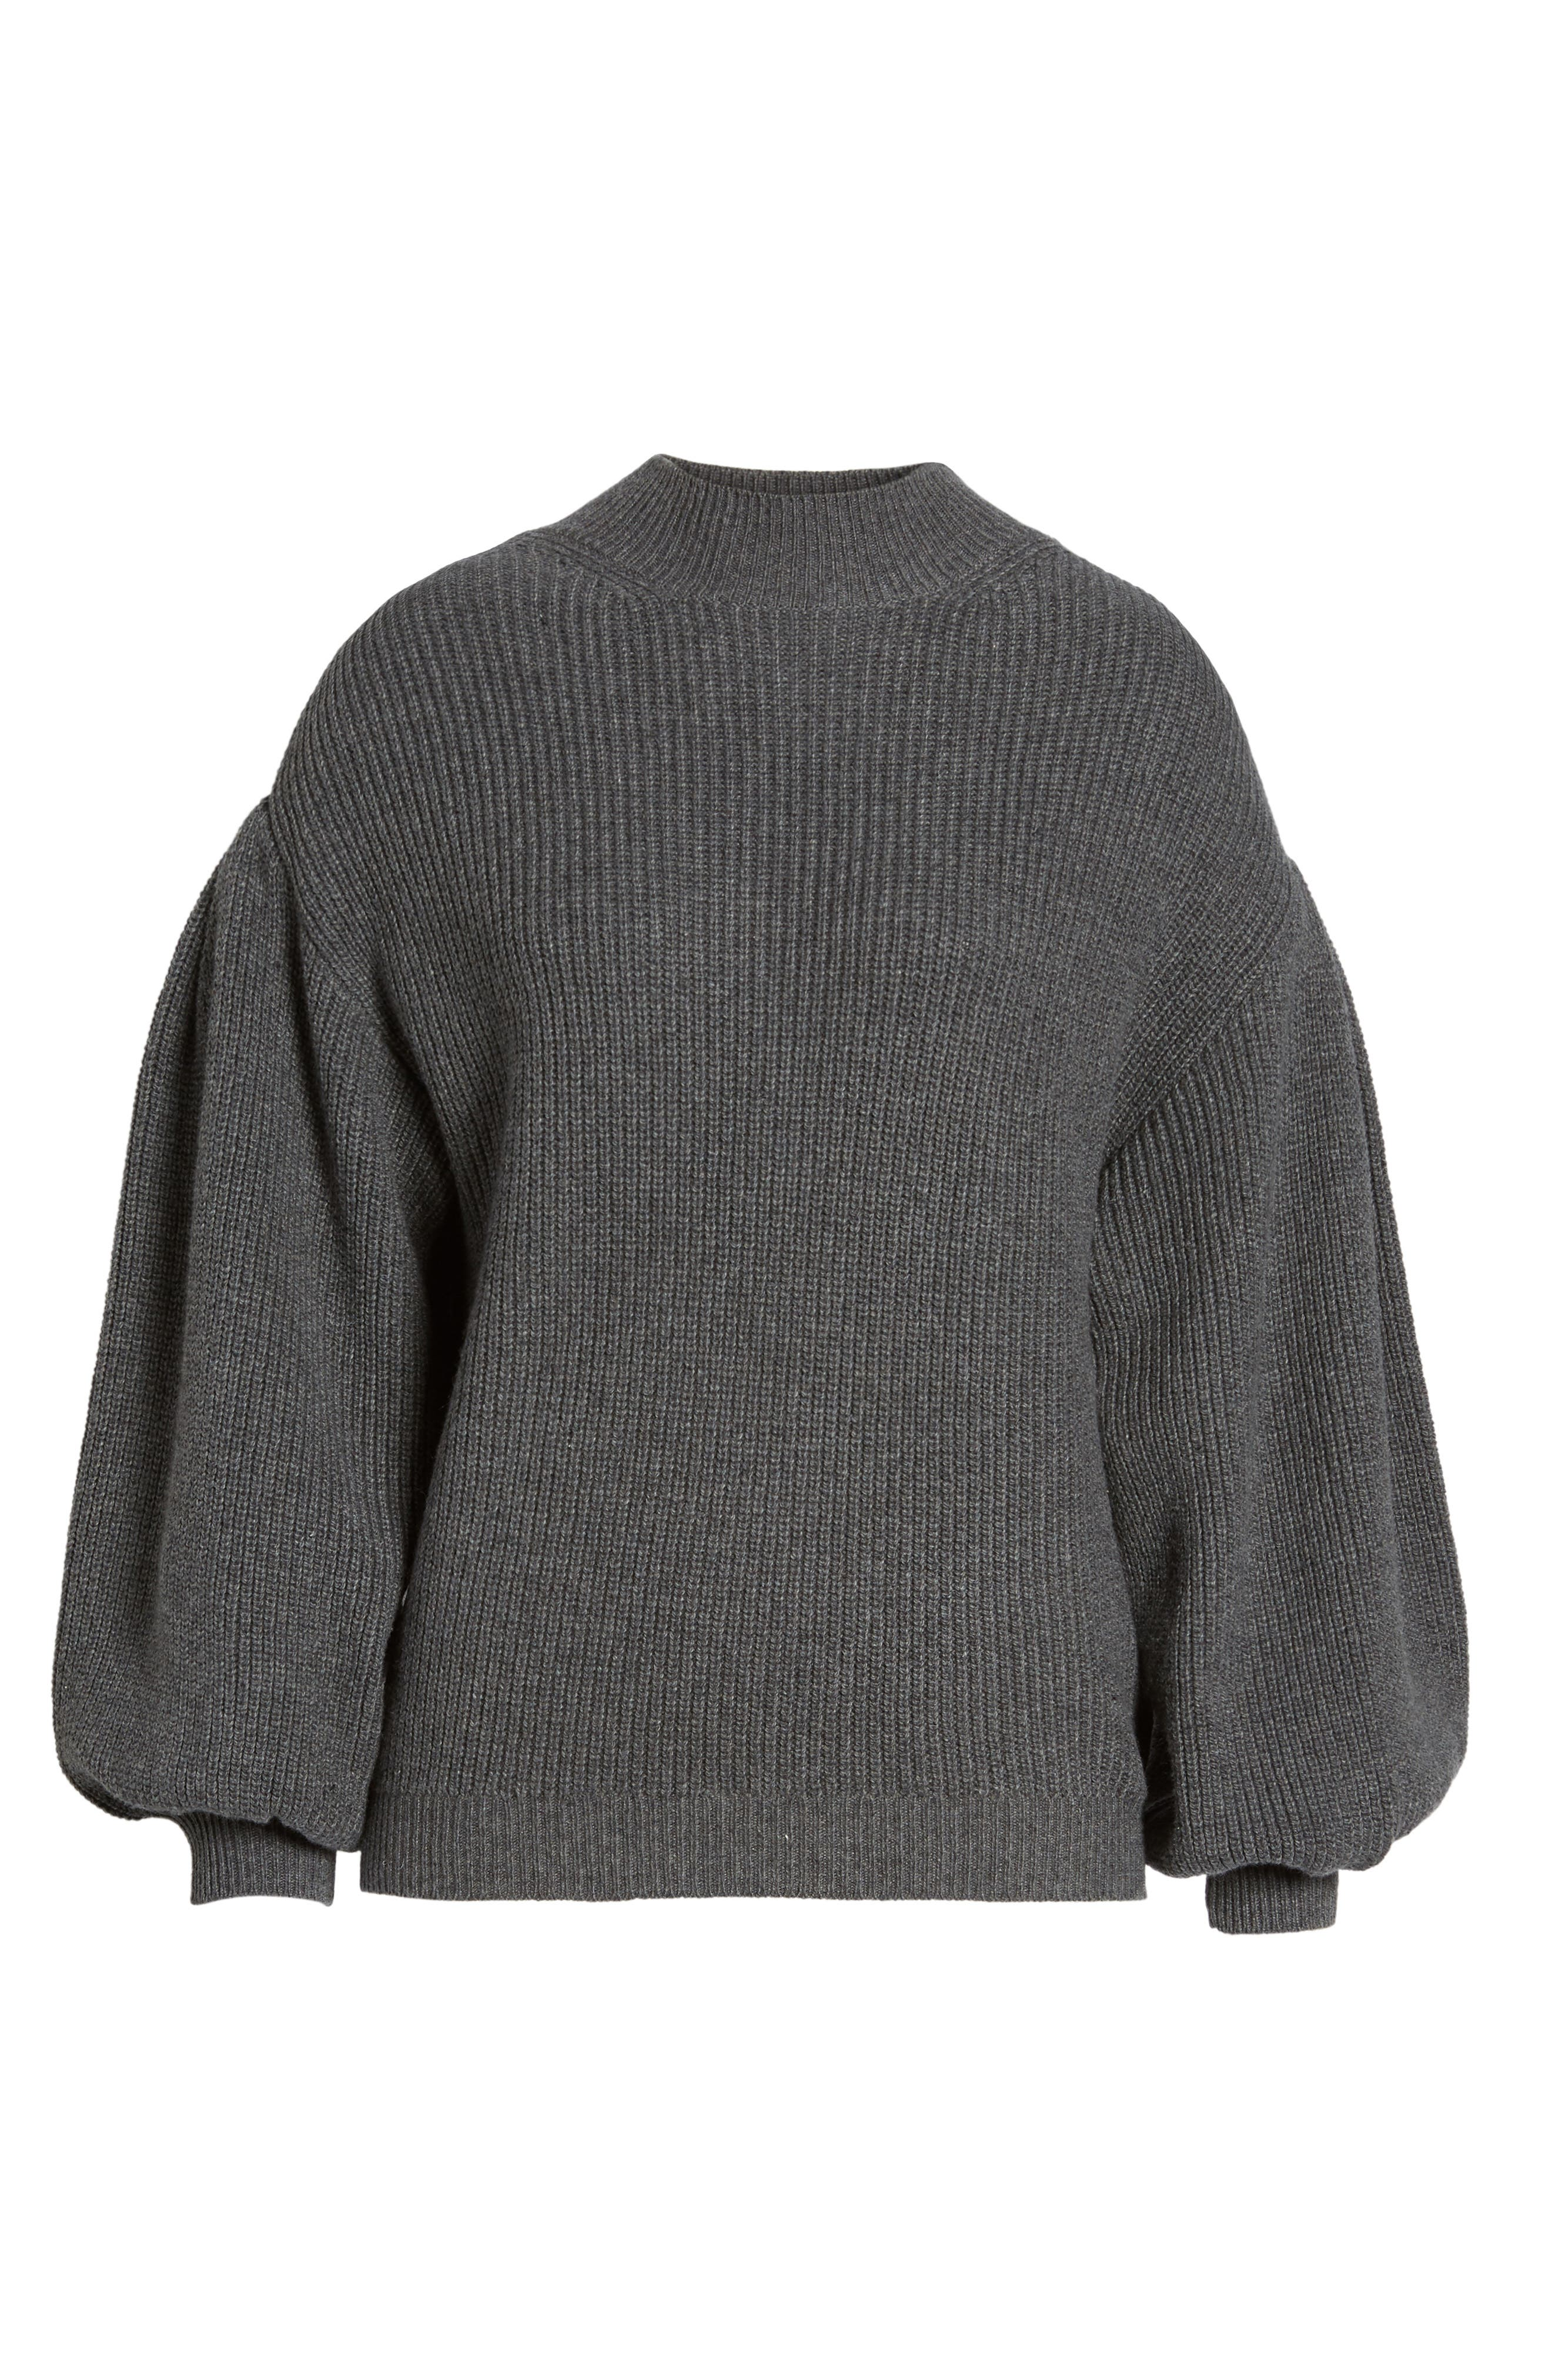 Blouson Sleeve Sweater,                             Alternate thumbnail 6, color,                             031